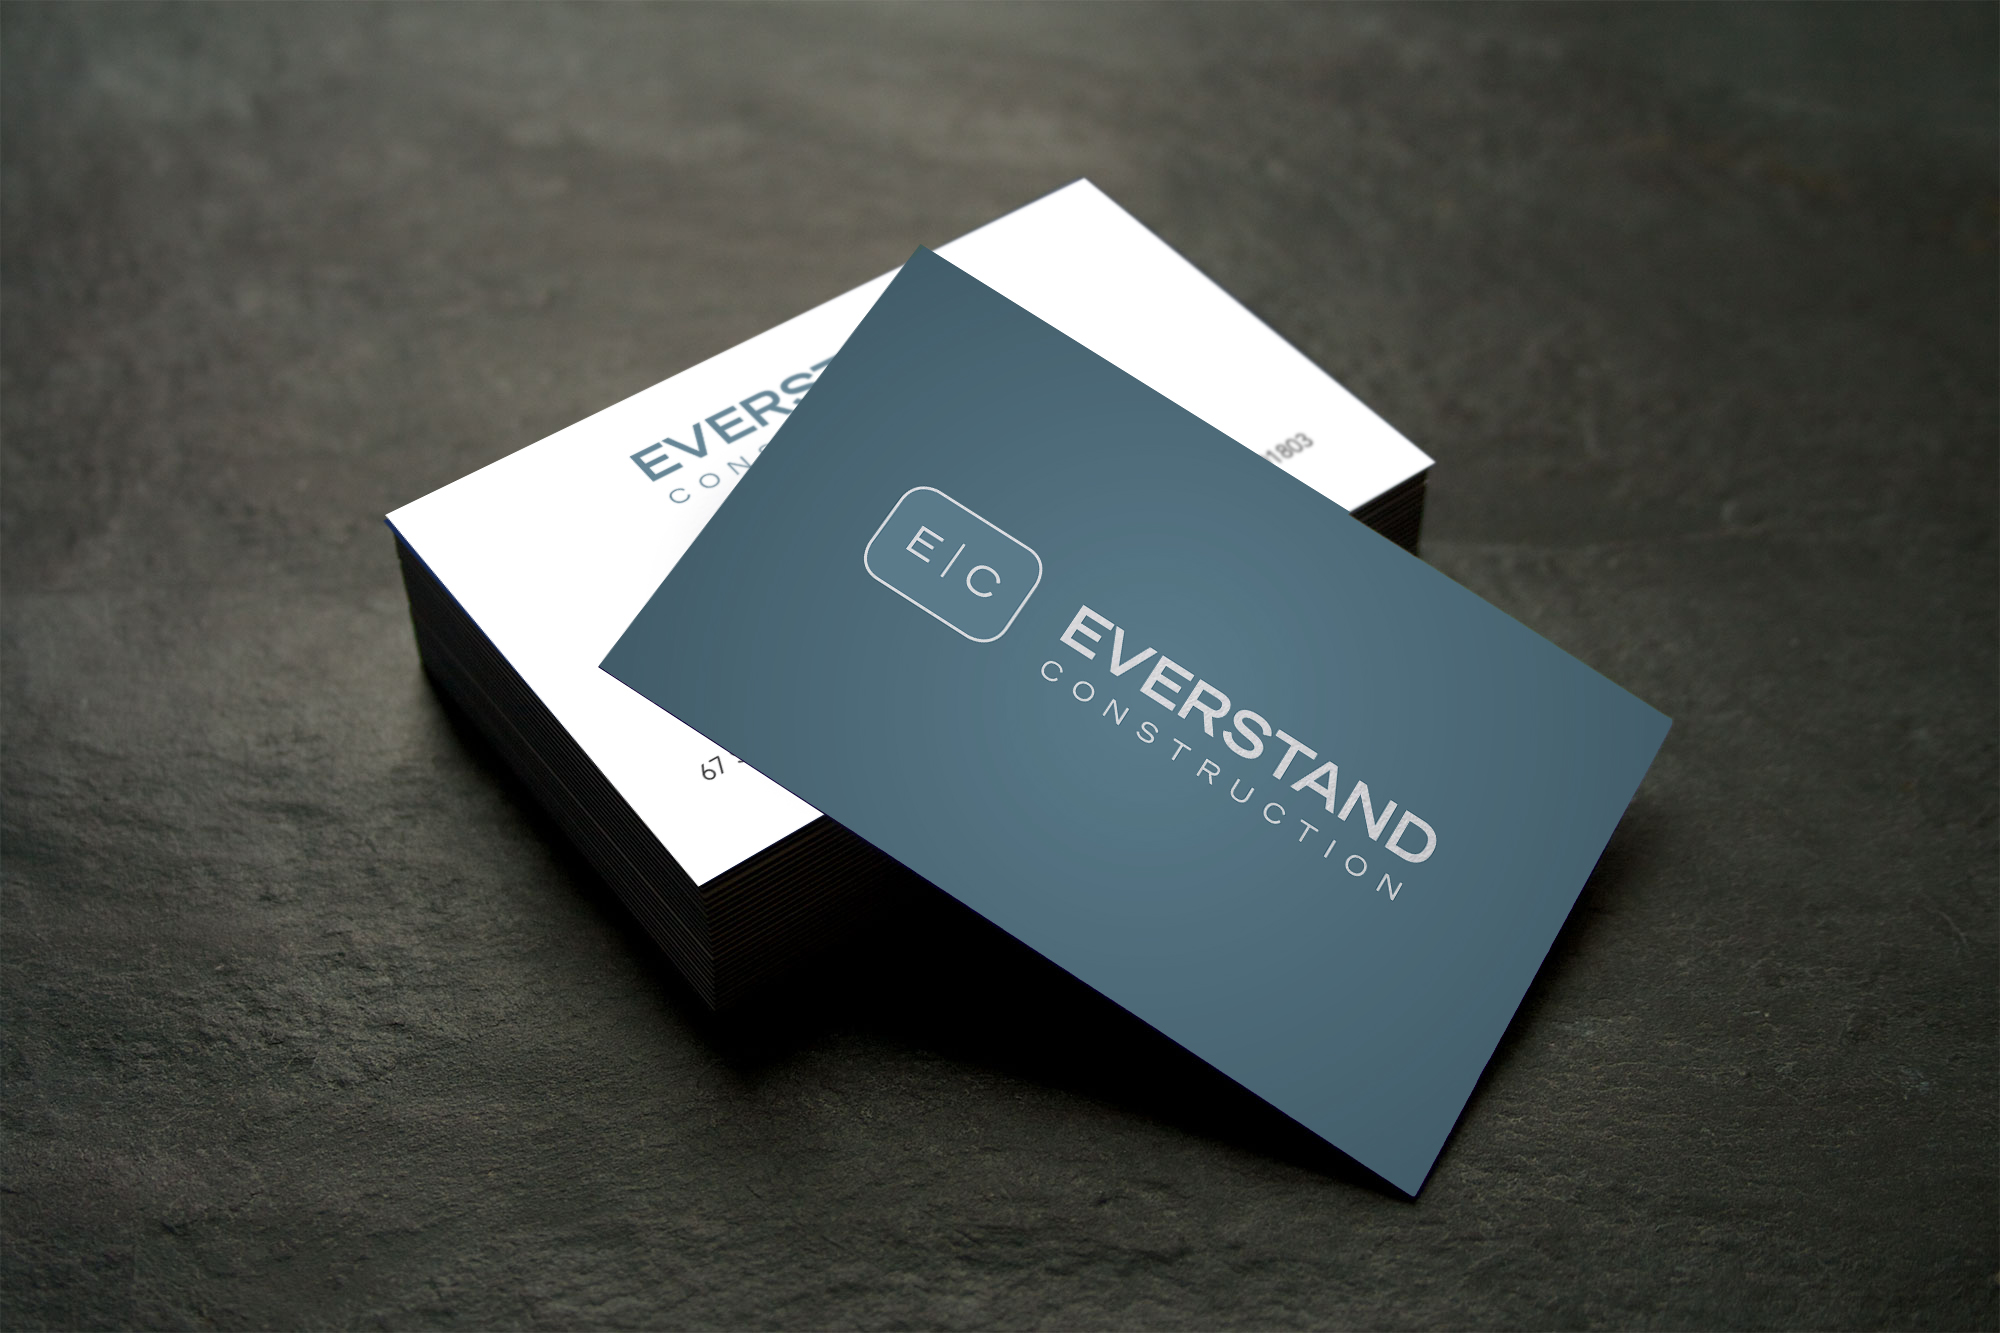 Everstand-business-cards copy copy.jpg